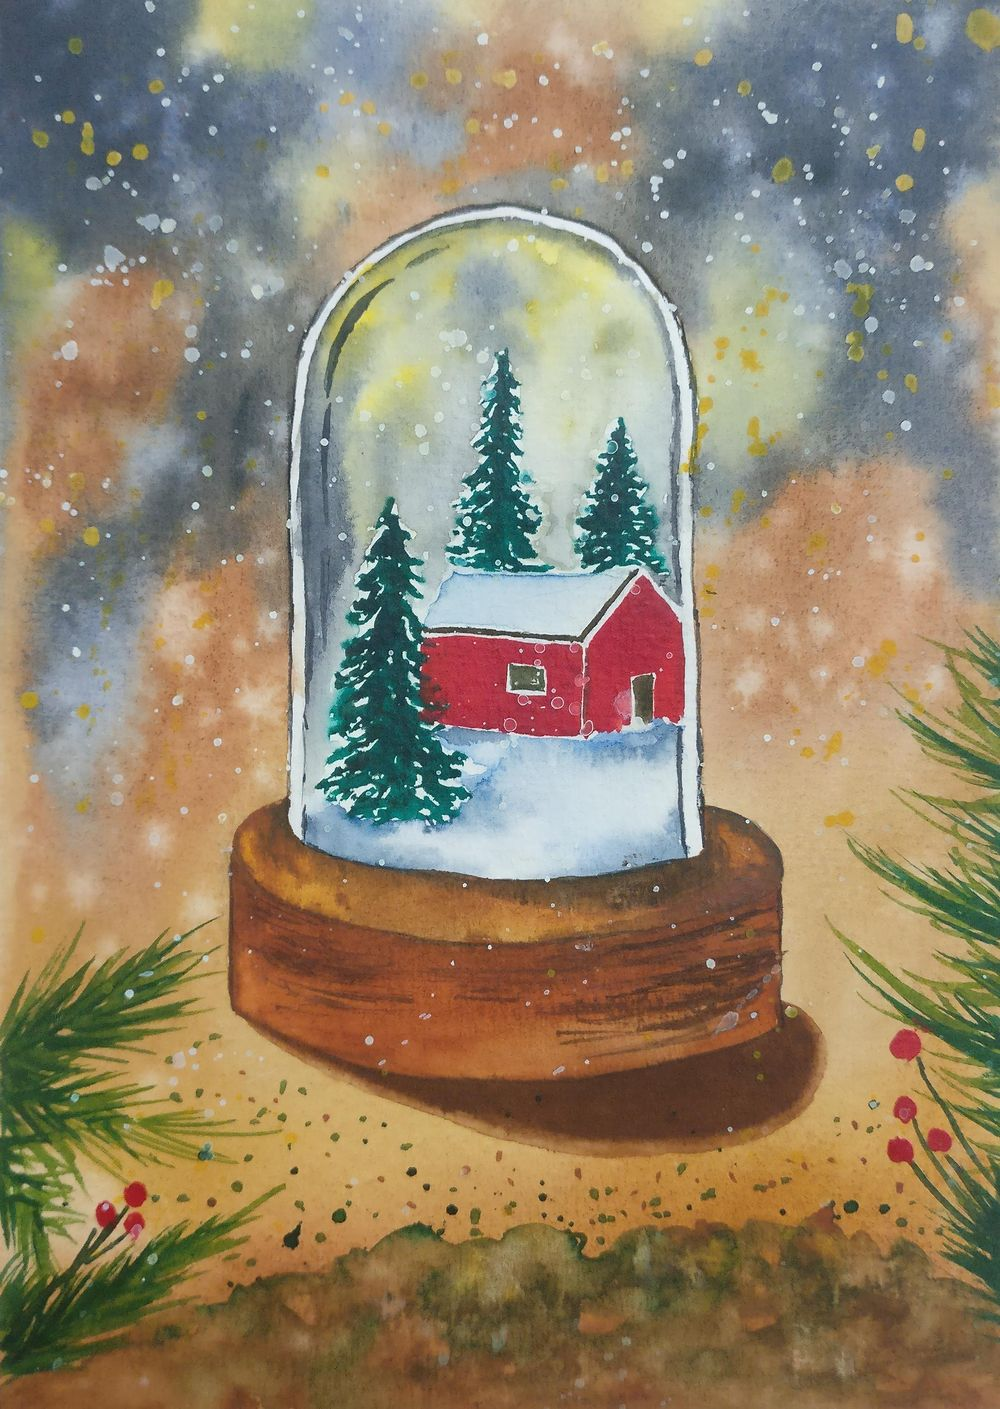 Christmas with watercolors - image 8 - student project